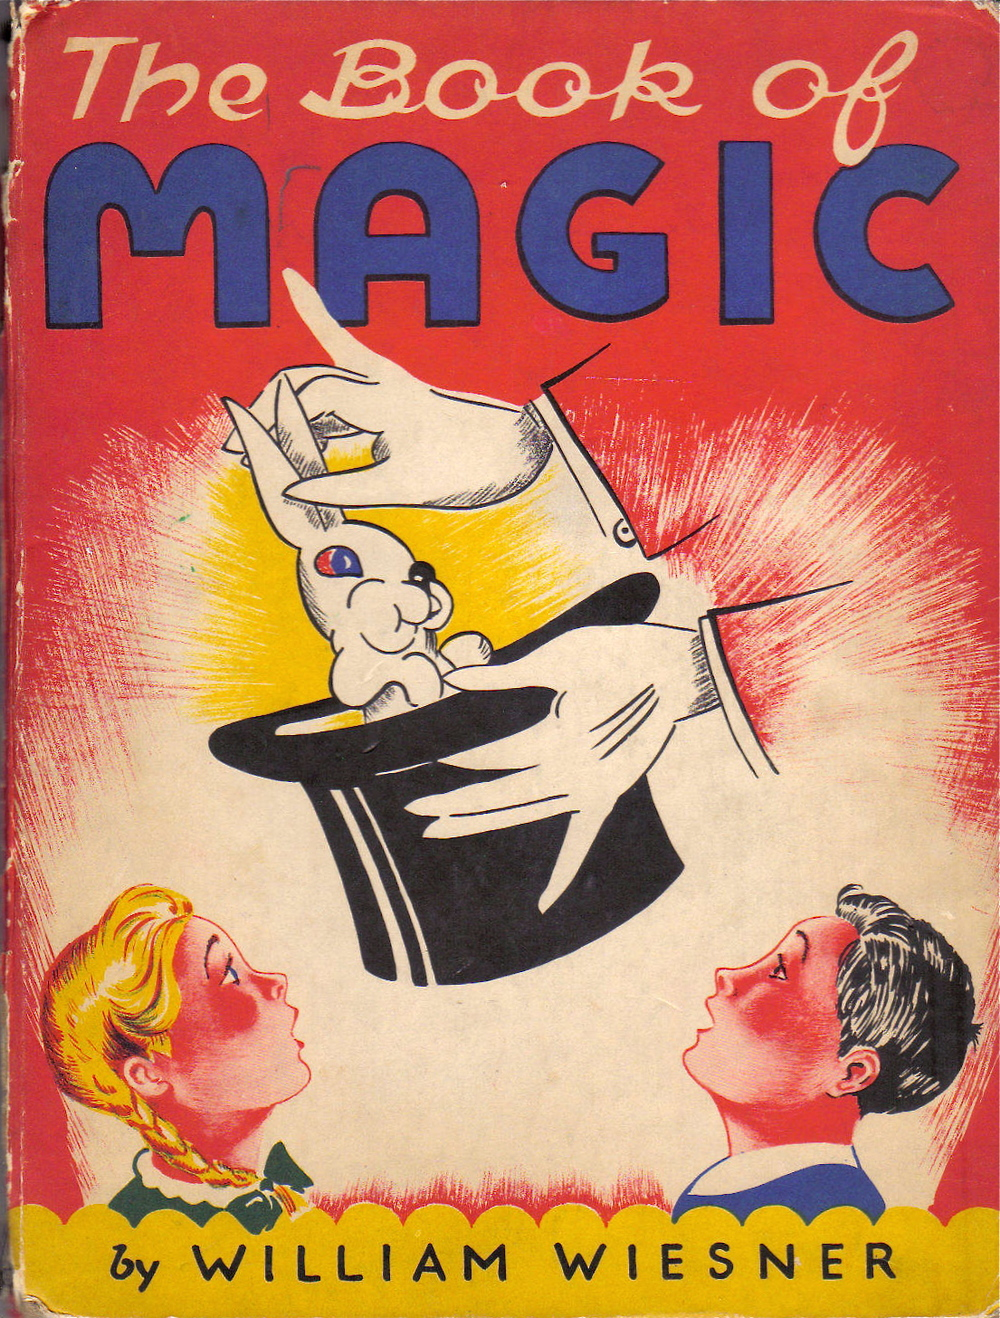 Wiesner, William [Arresto the Great Presents] The Book of Magic. Grosset and Dunlap, 1944. First Edition